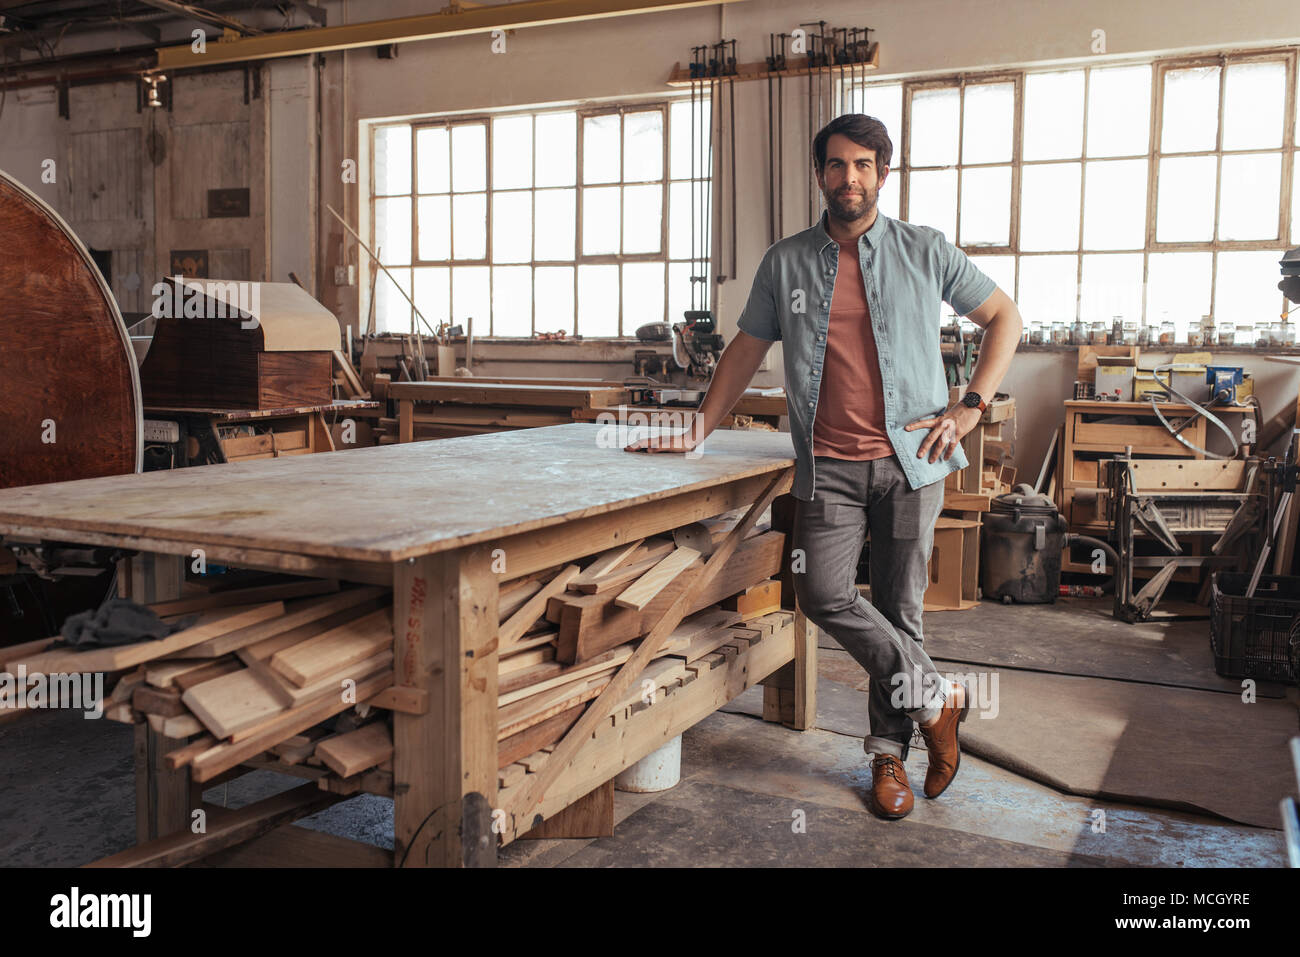 Portrait of a confident young woodworker standing next to a workbench full of wood in his carpentry workshop - Stock Image